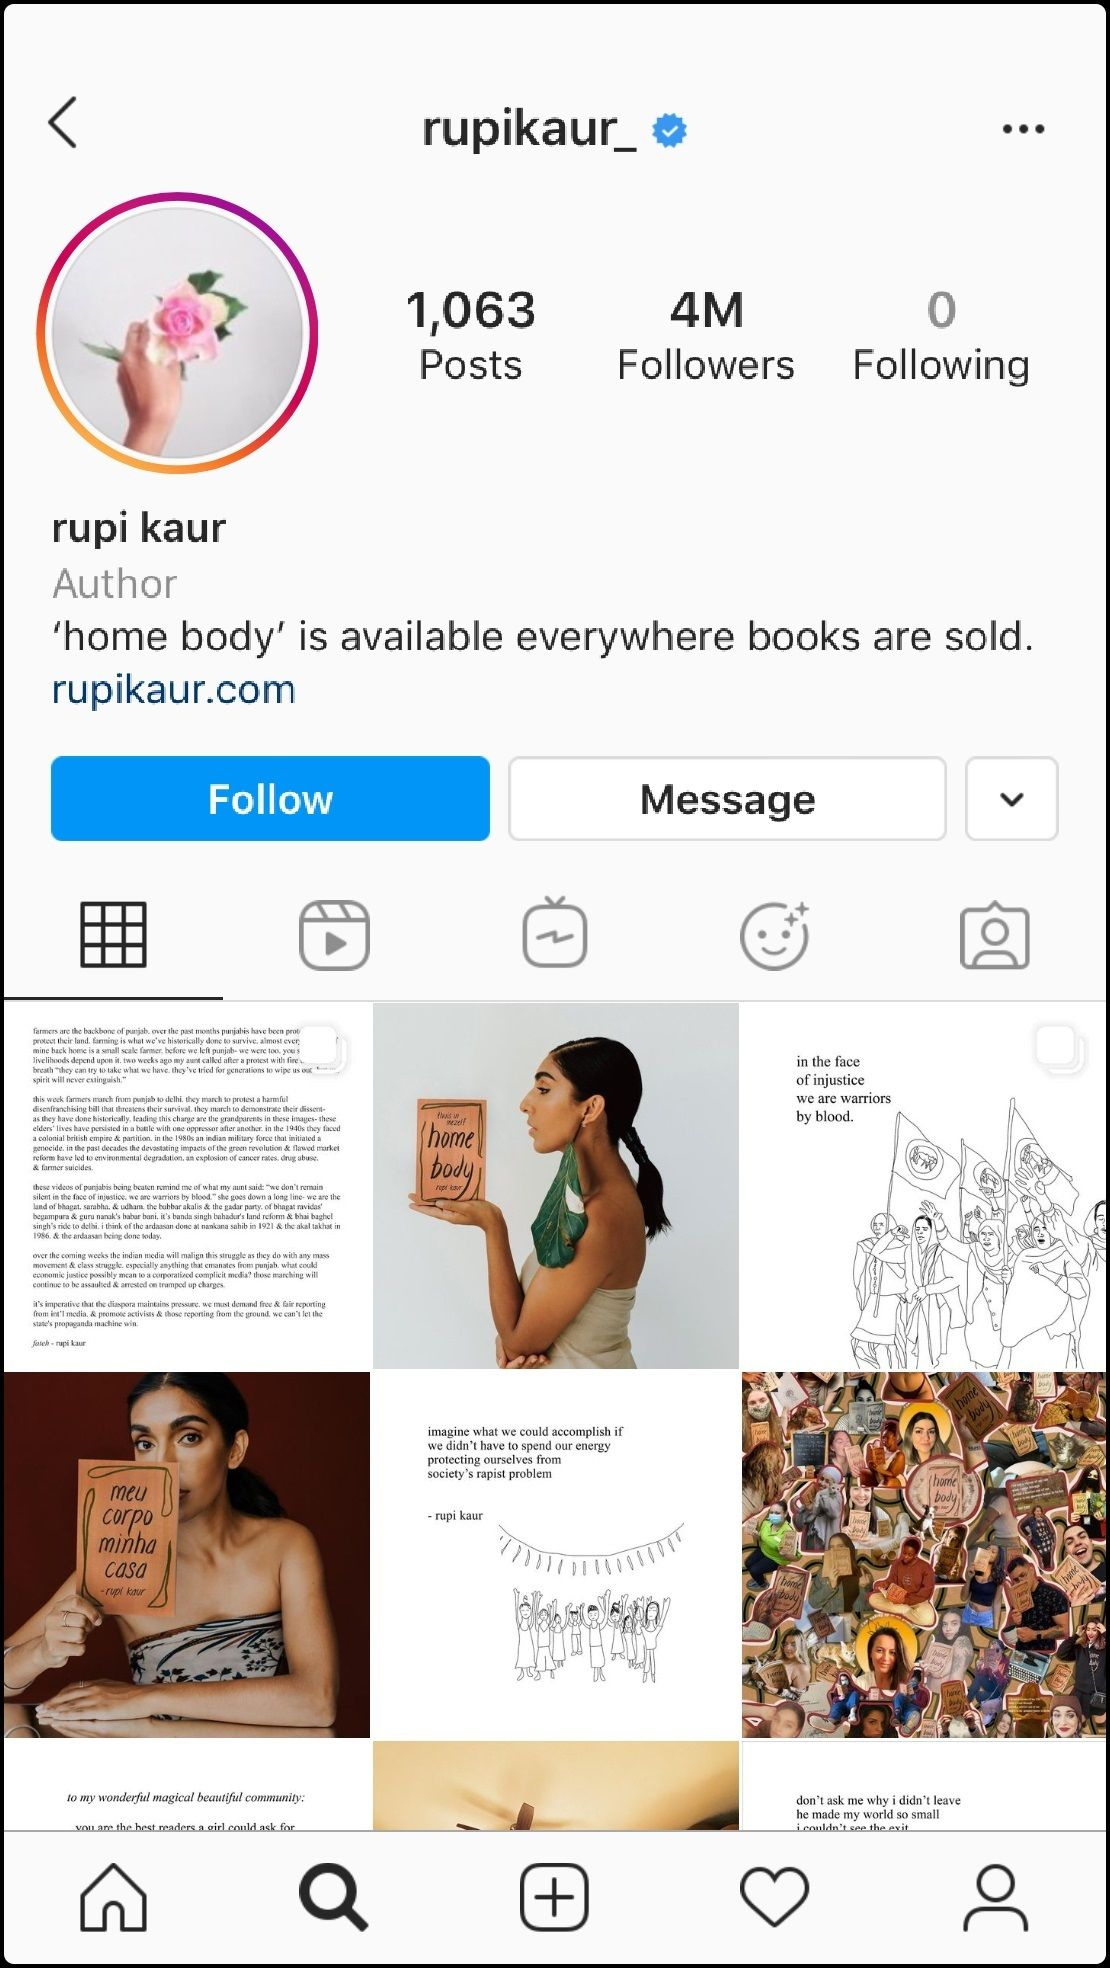 Rupi Kaur's Instagram page as of 12/1/2020.